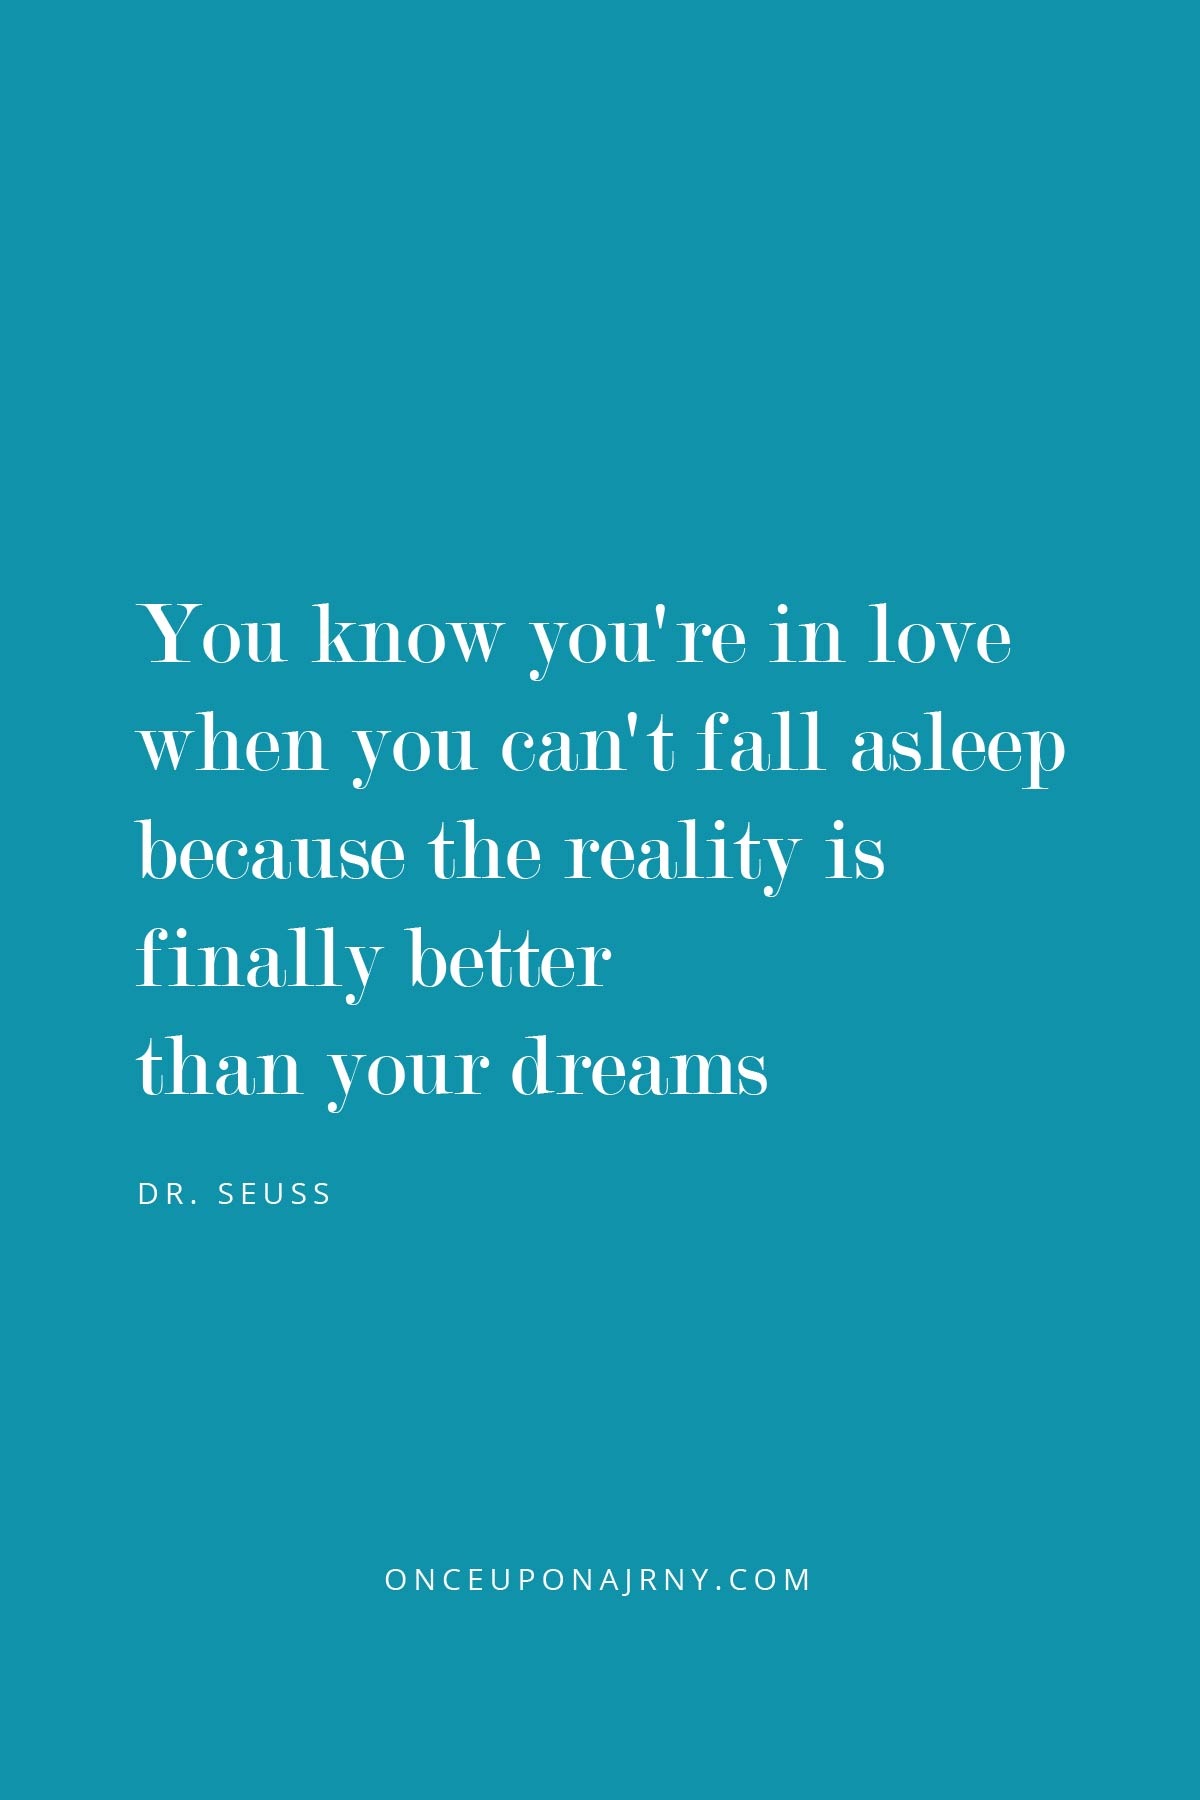 You know you're in love when you can't fall asleep because the reality is finally better than your dreams. - Dr. Seuss love is love quotes